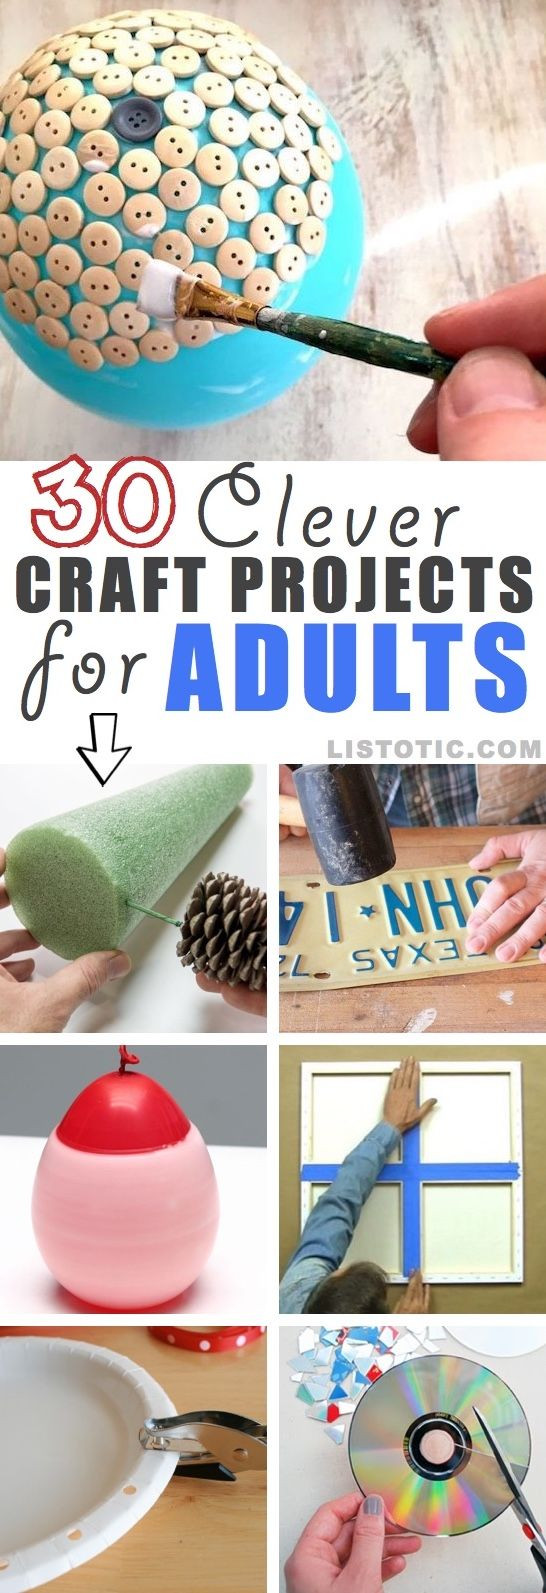 Home Craft Ideas For Adults  Easy DIY craft ideas for adults and teens for the home